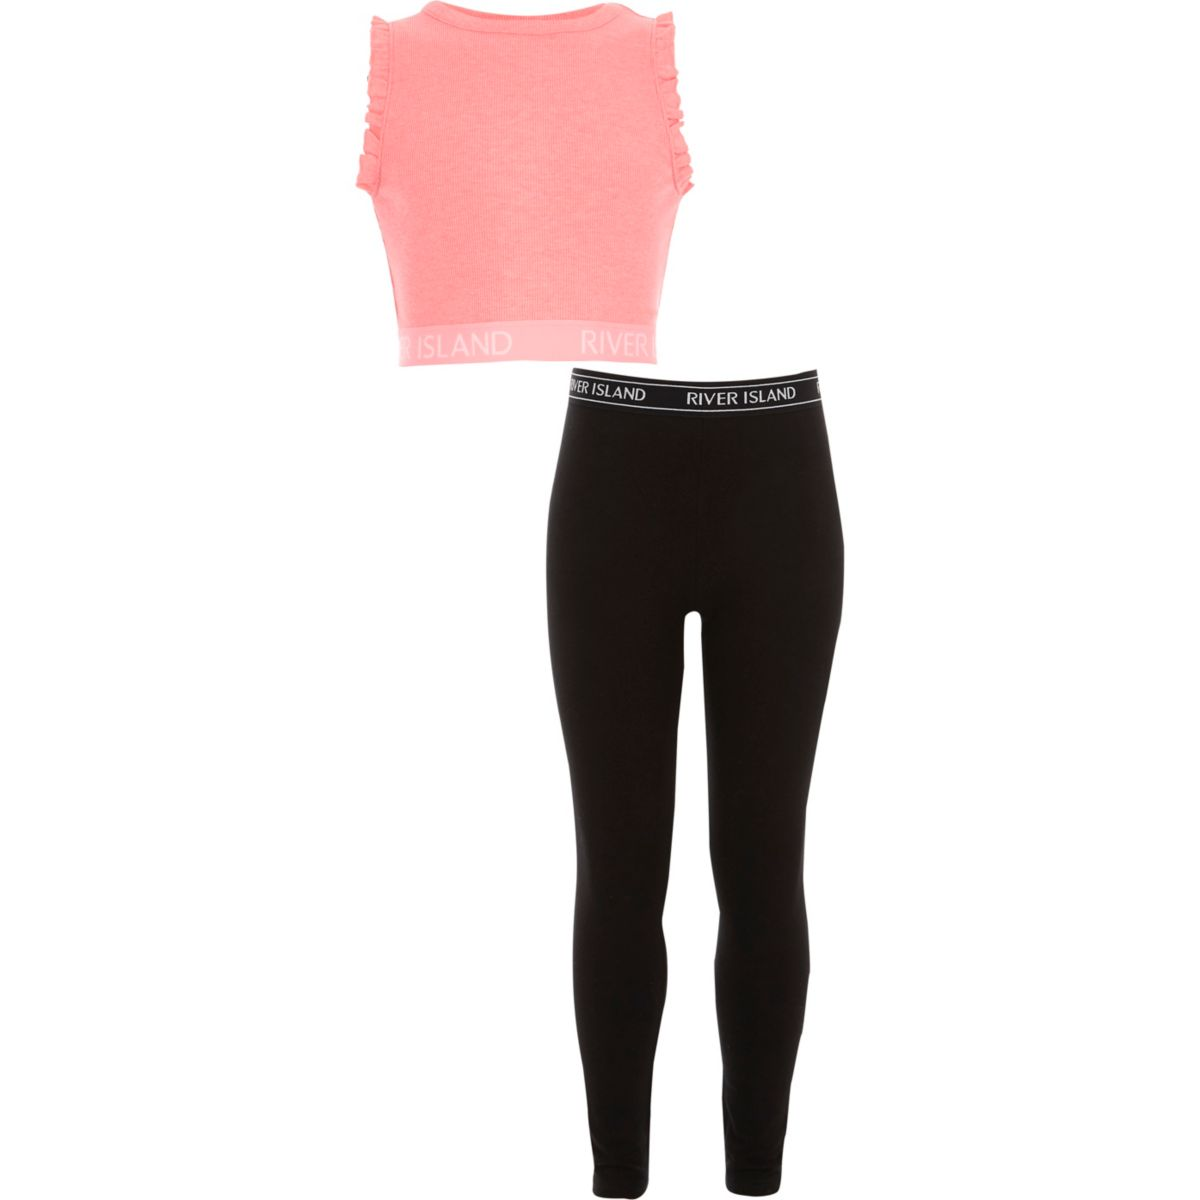 Girls Pink Branded Waistband Crop Top Outfit - Sets U0026 Outfits - Girls